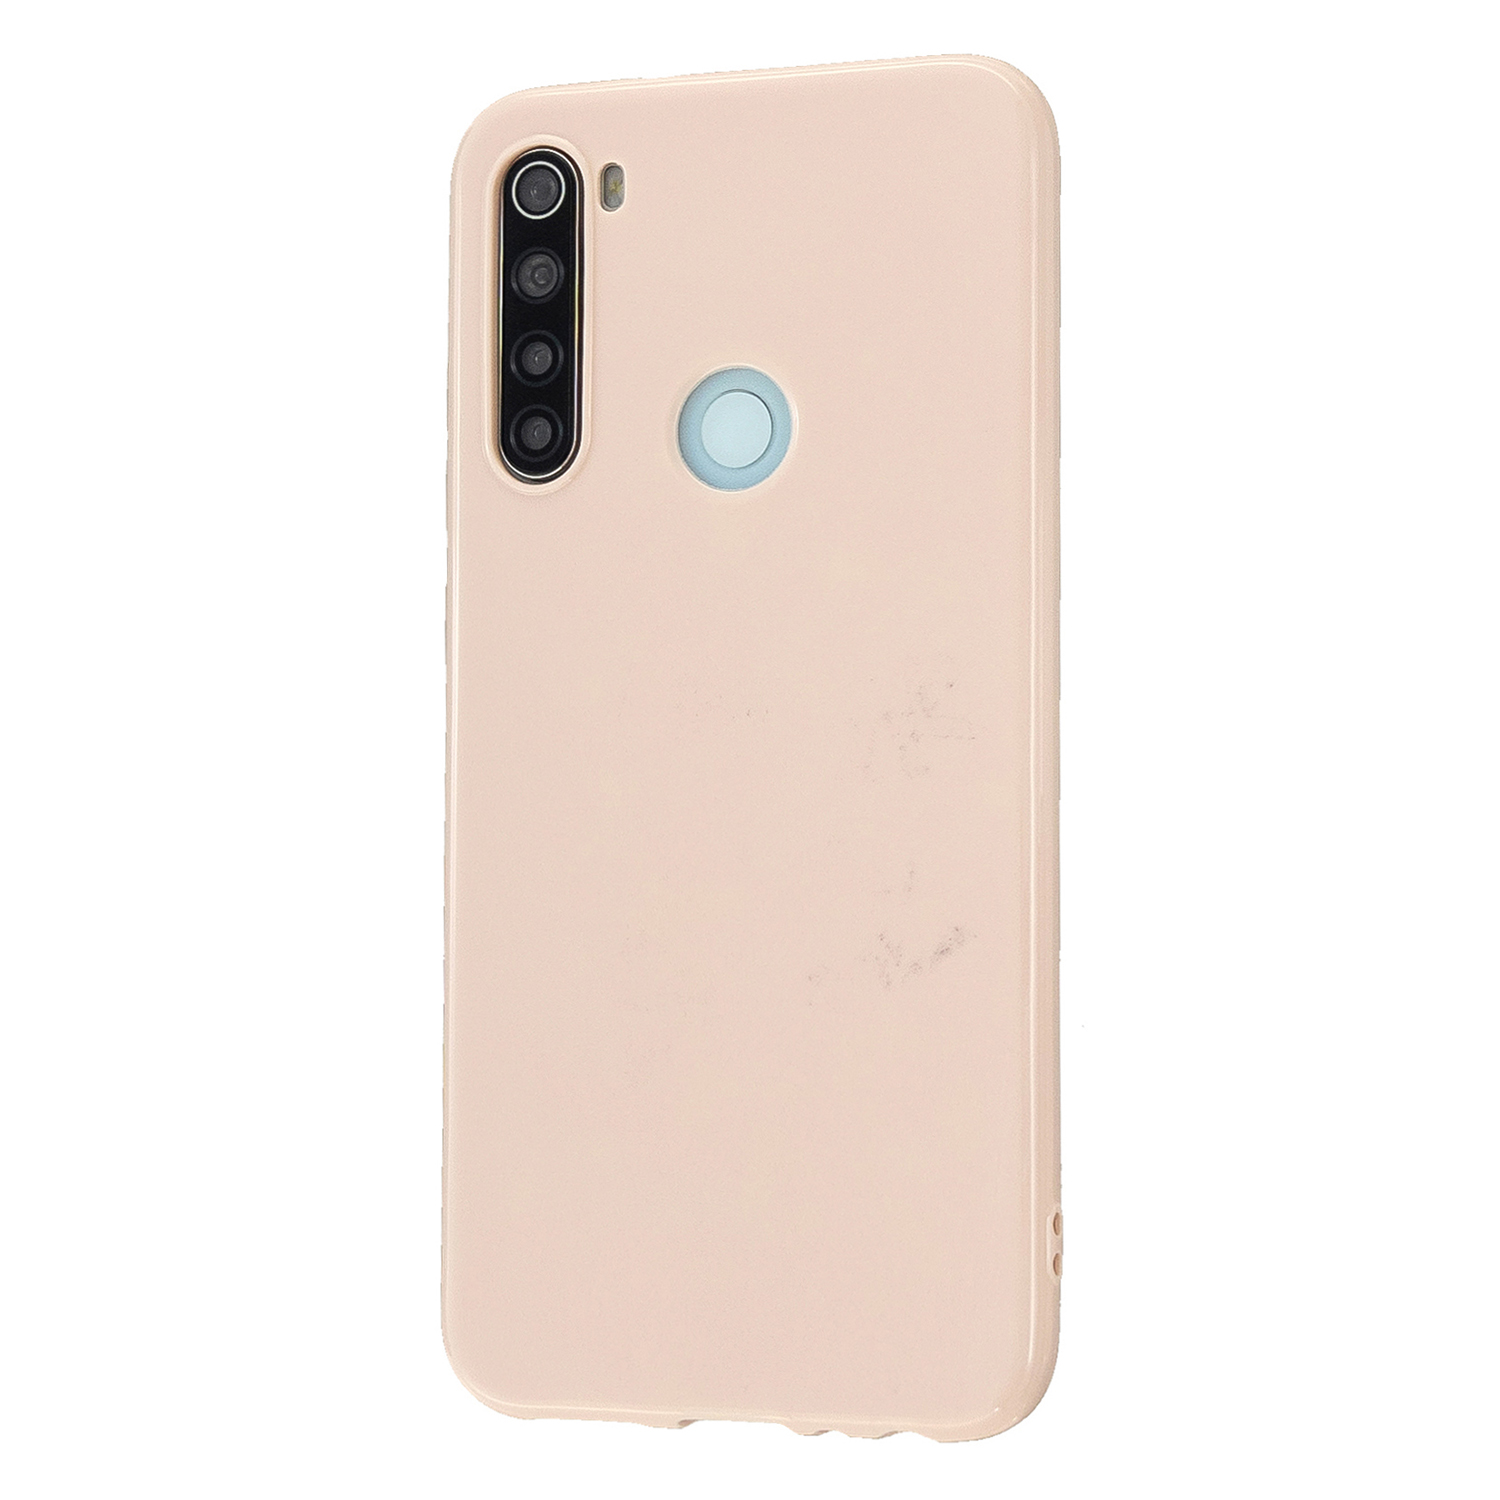 For Redmi Note 8/8 Pro Cellphone Cover Reinforced Soft TPU Phone Case Anti-scratch Full Body Protection Sakura pink